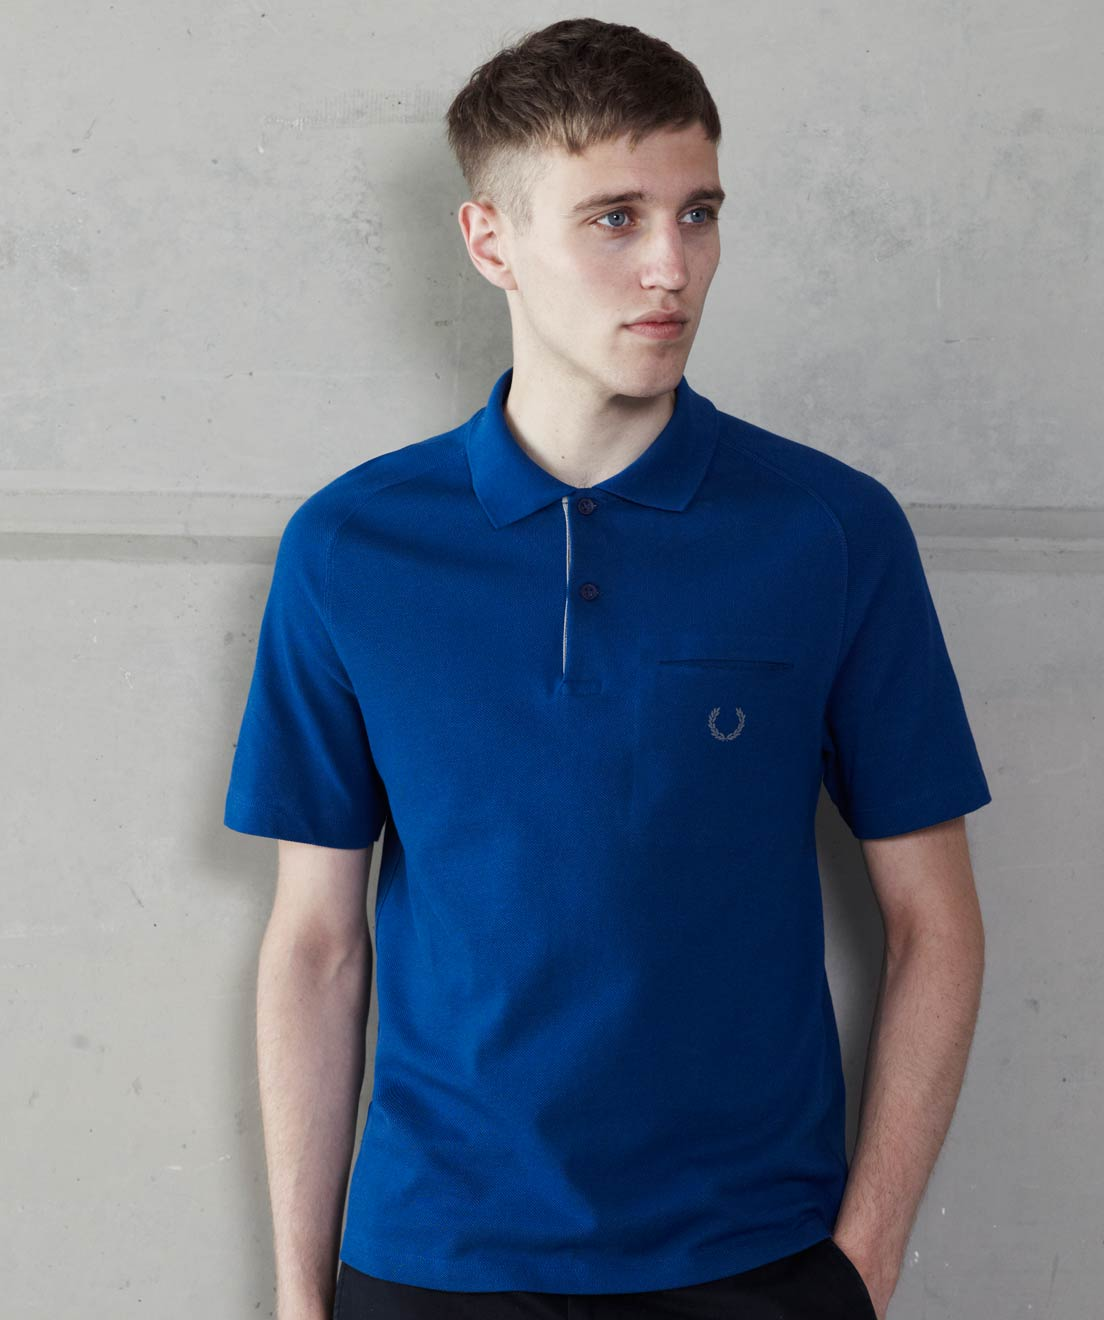 Fred Perry - Blank Canvas Athletic Collection